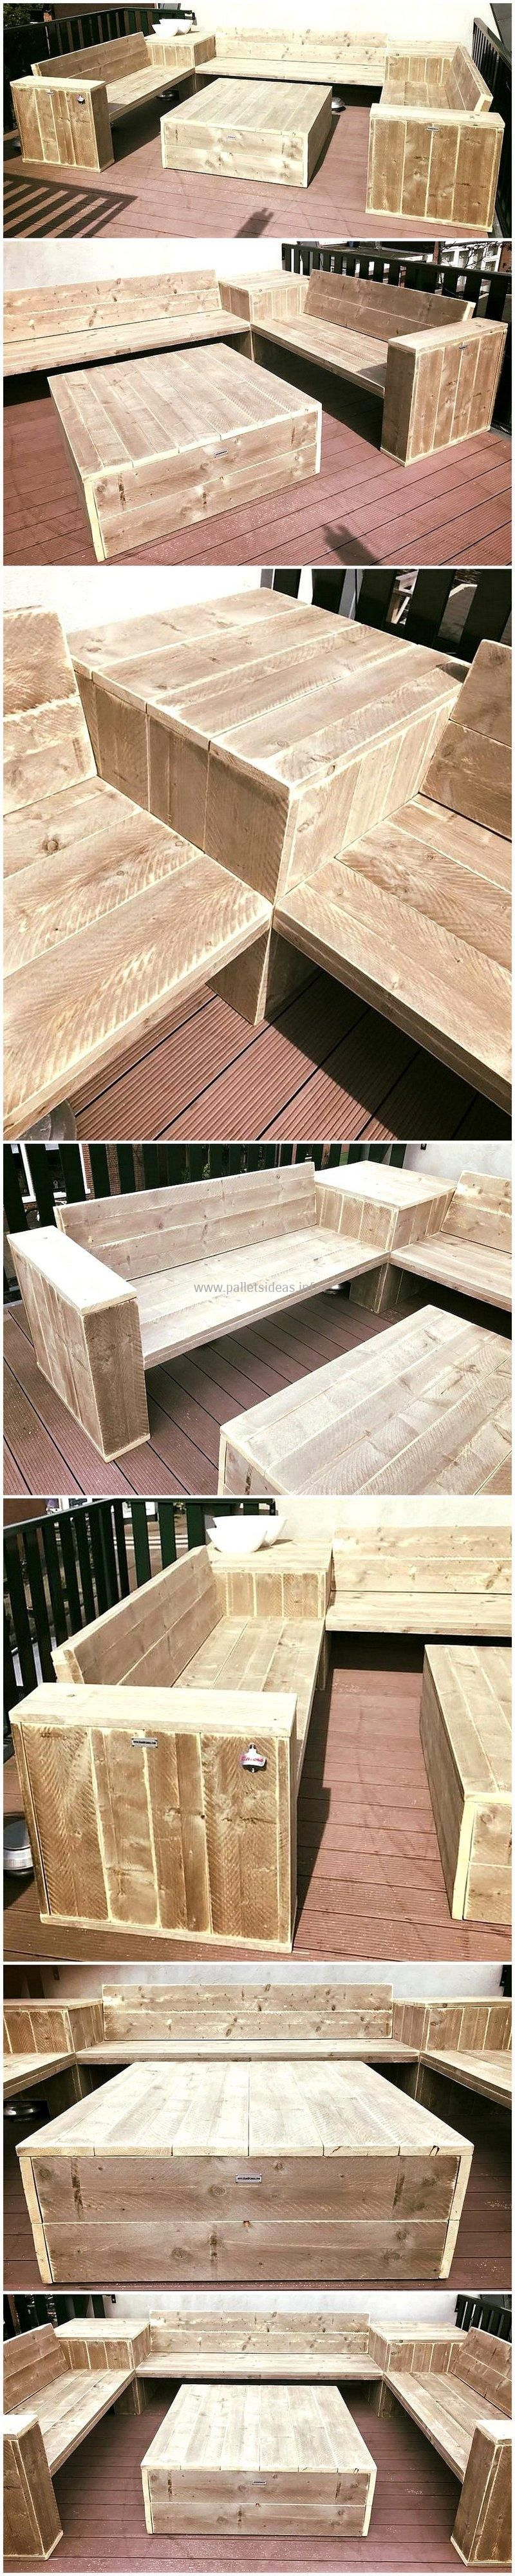 Now Reshape The Old Shipping Pallet Wood Of Your House